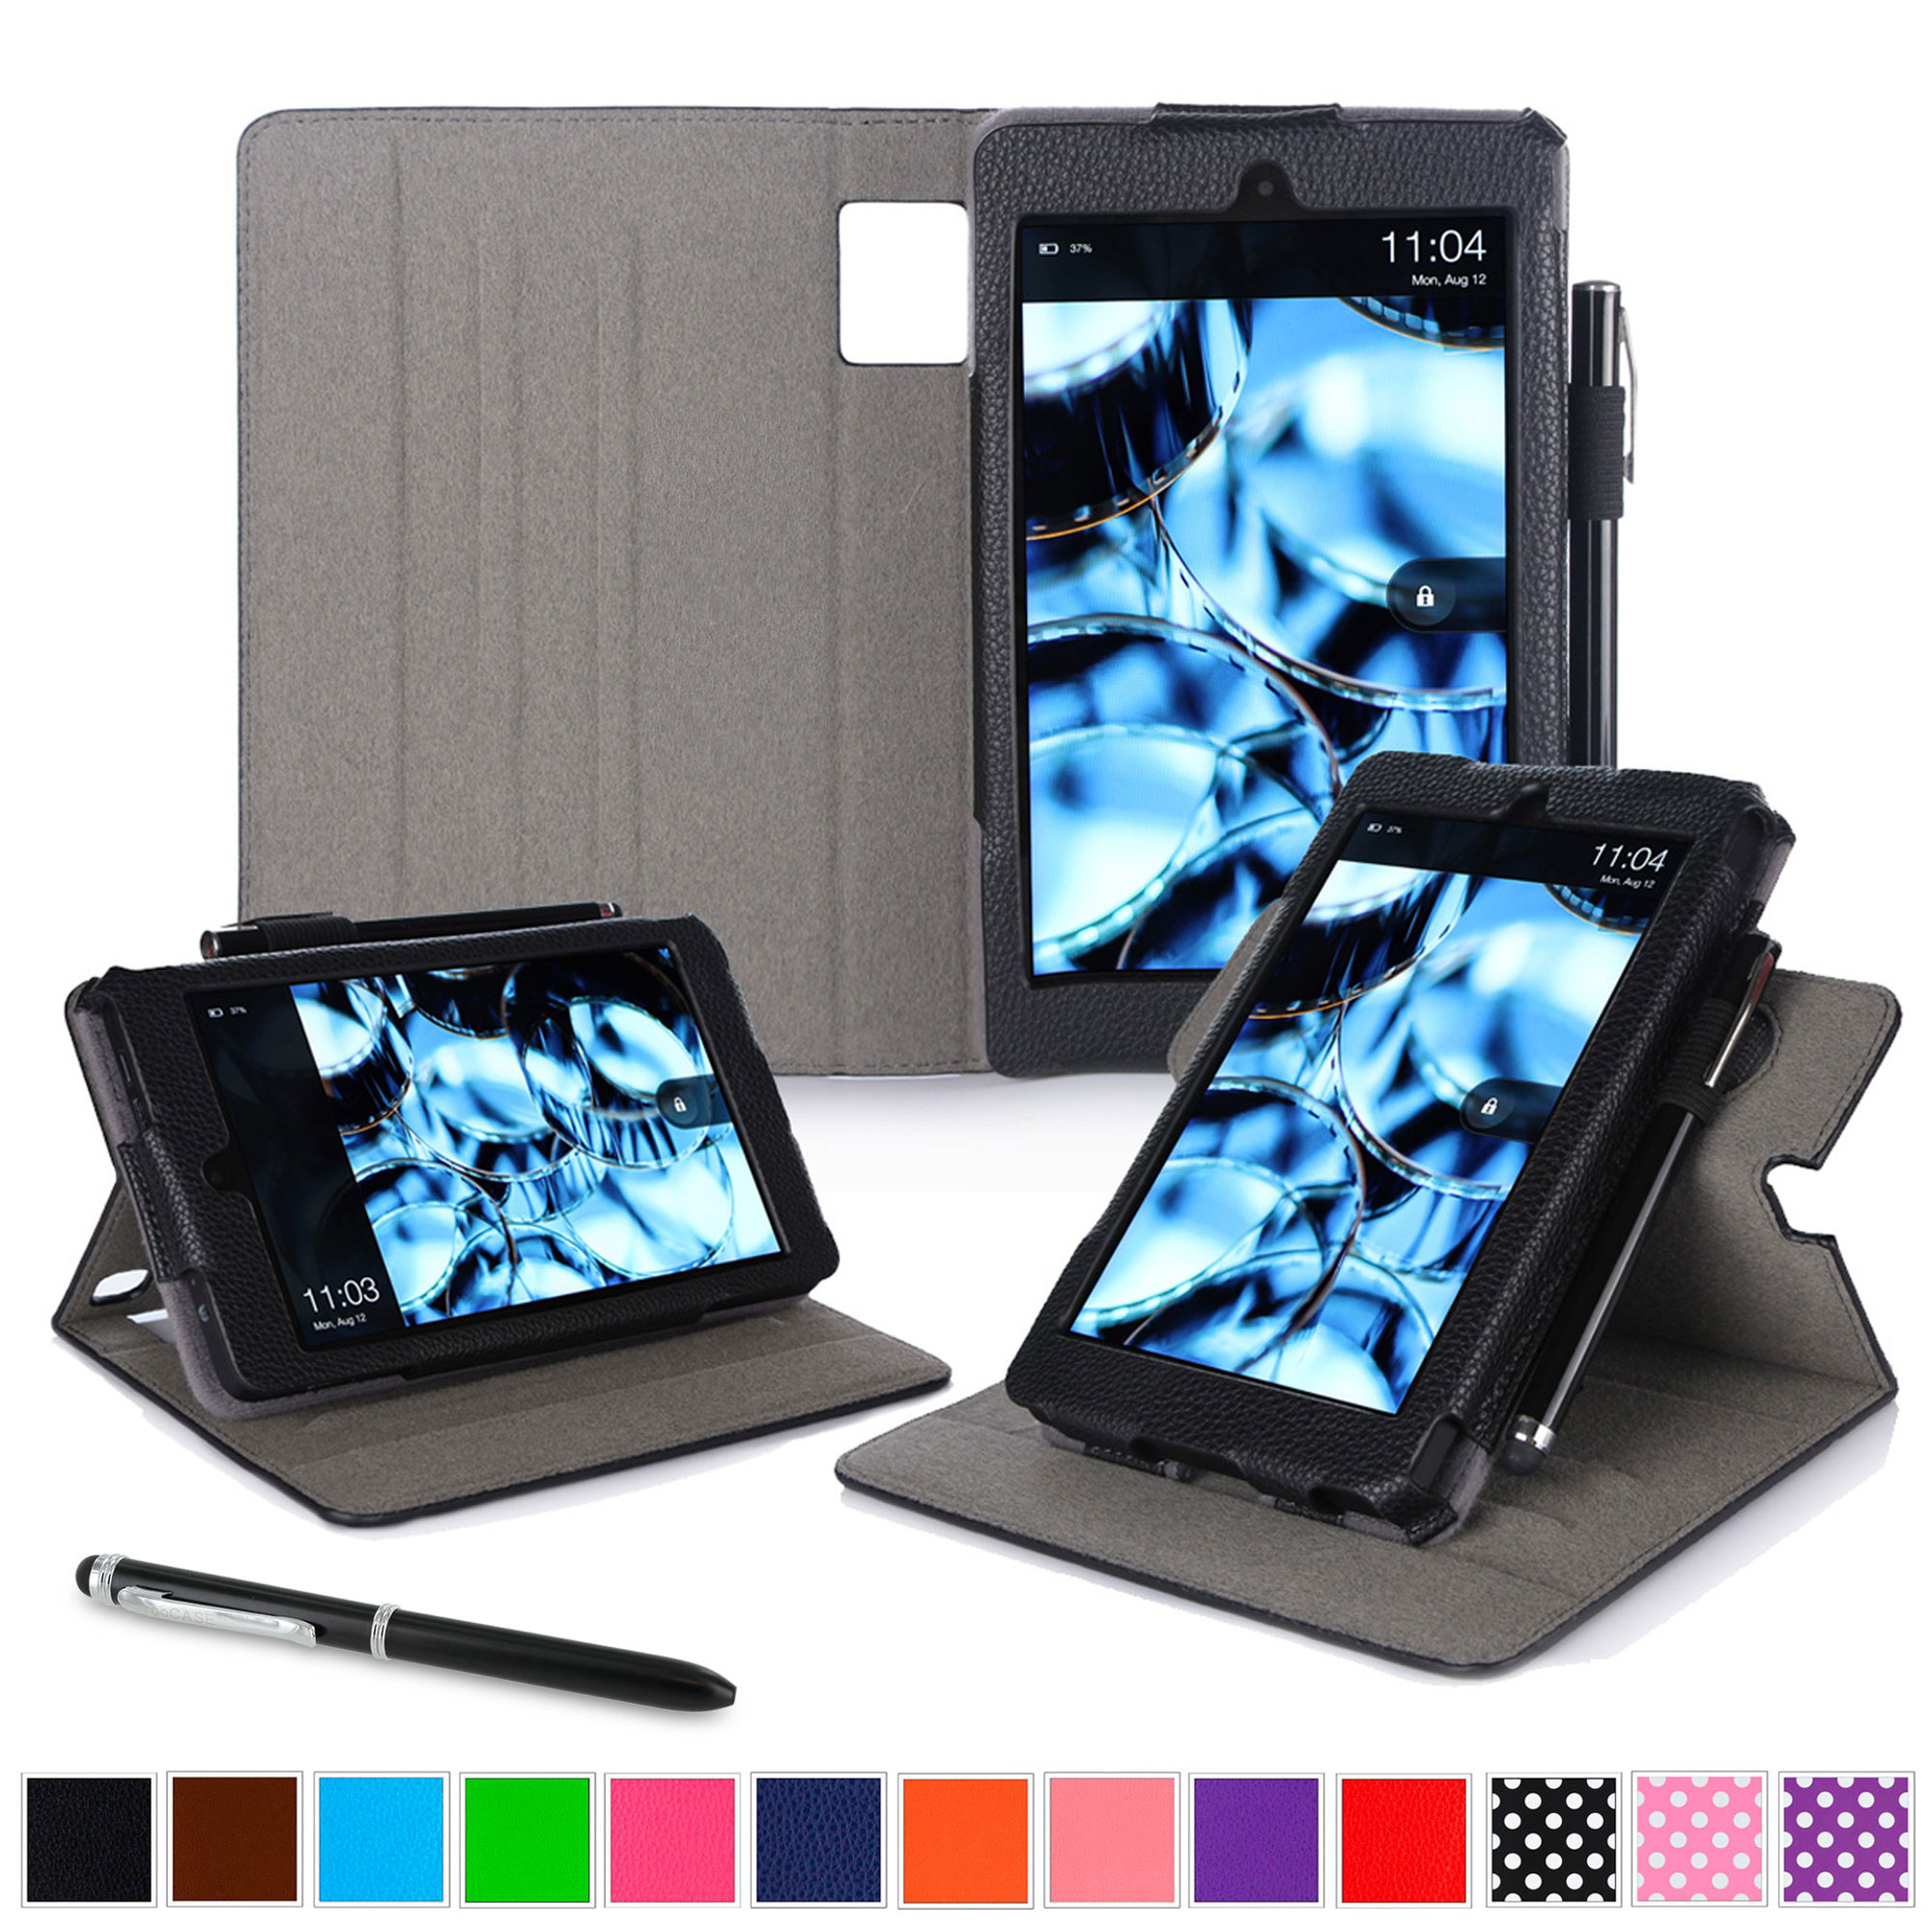 Fire HD 6 Tablet (2014) Case, roocase new Fire HD 6 Dual View Folio Case with Sleep / Wake Smart Cover with Multi-Viewing Stand for All-New Fire HD 6 Tablet (2014)